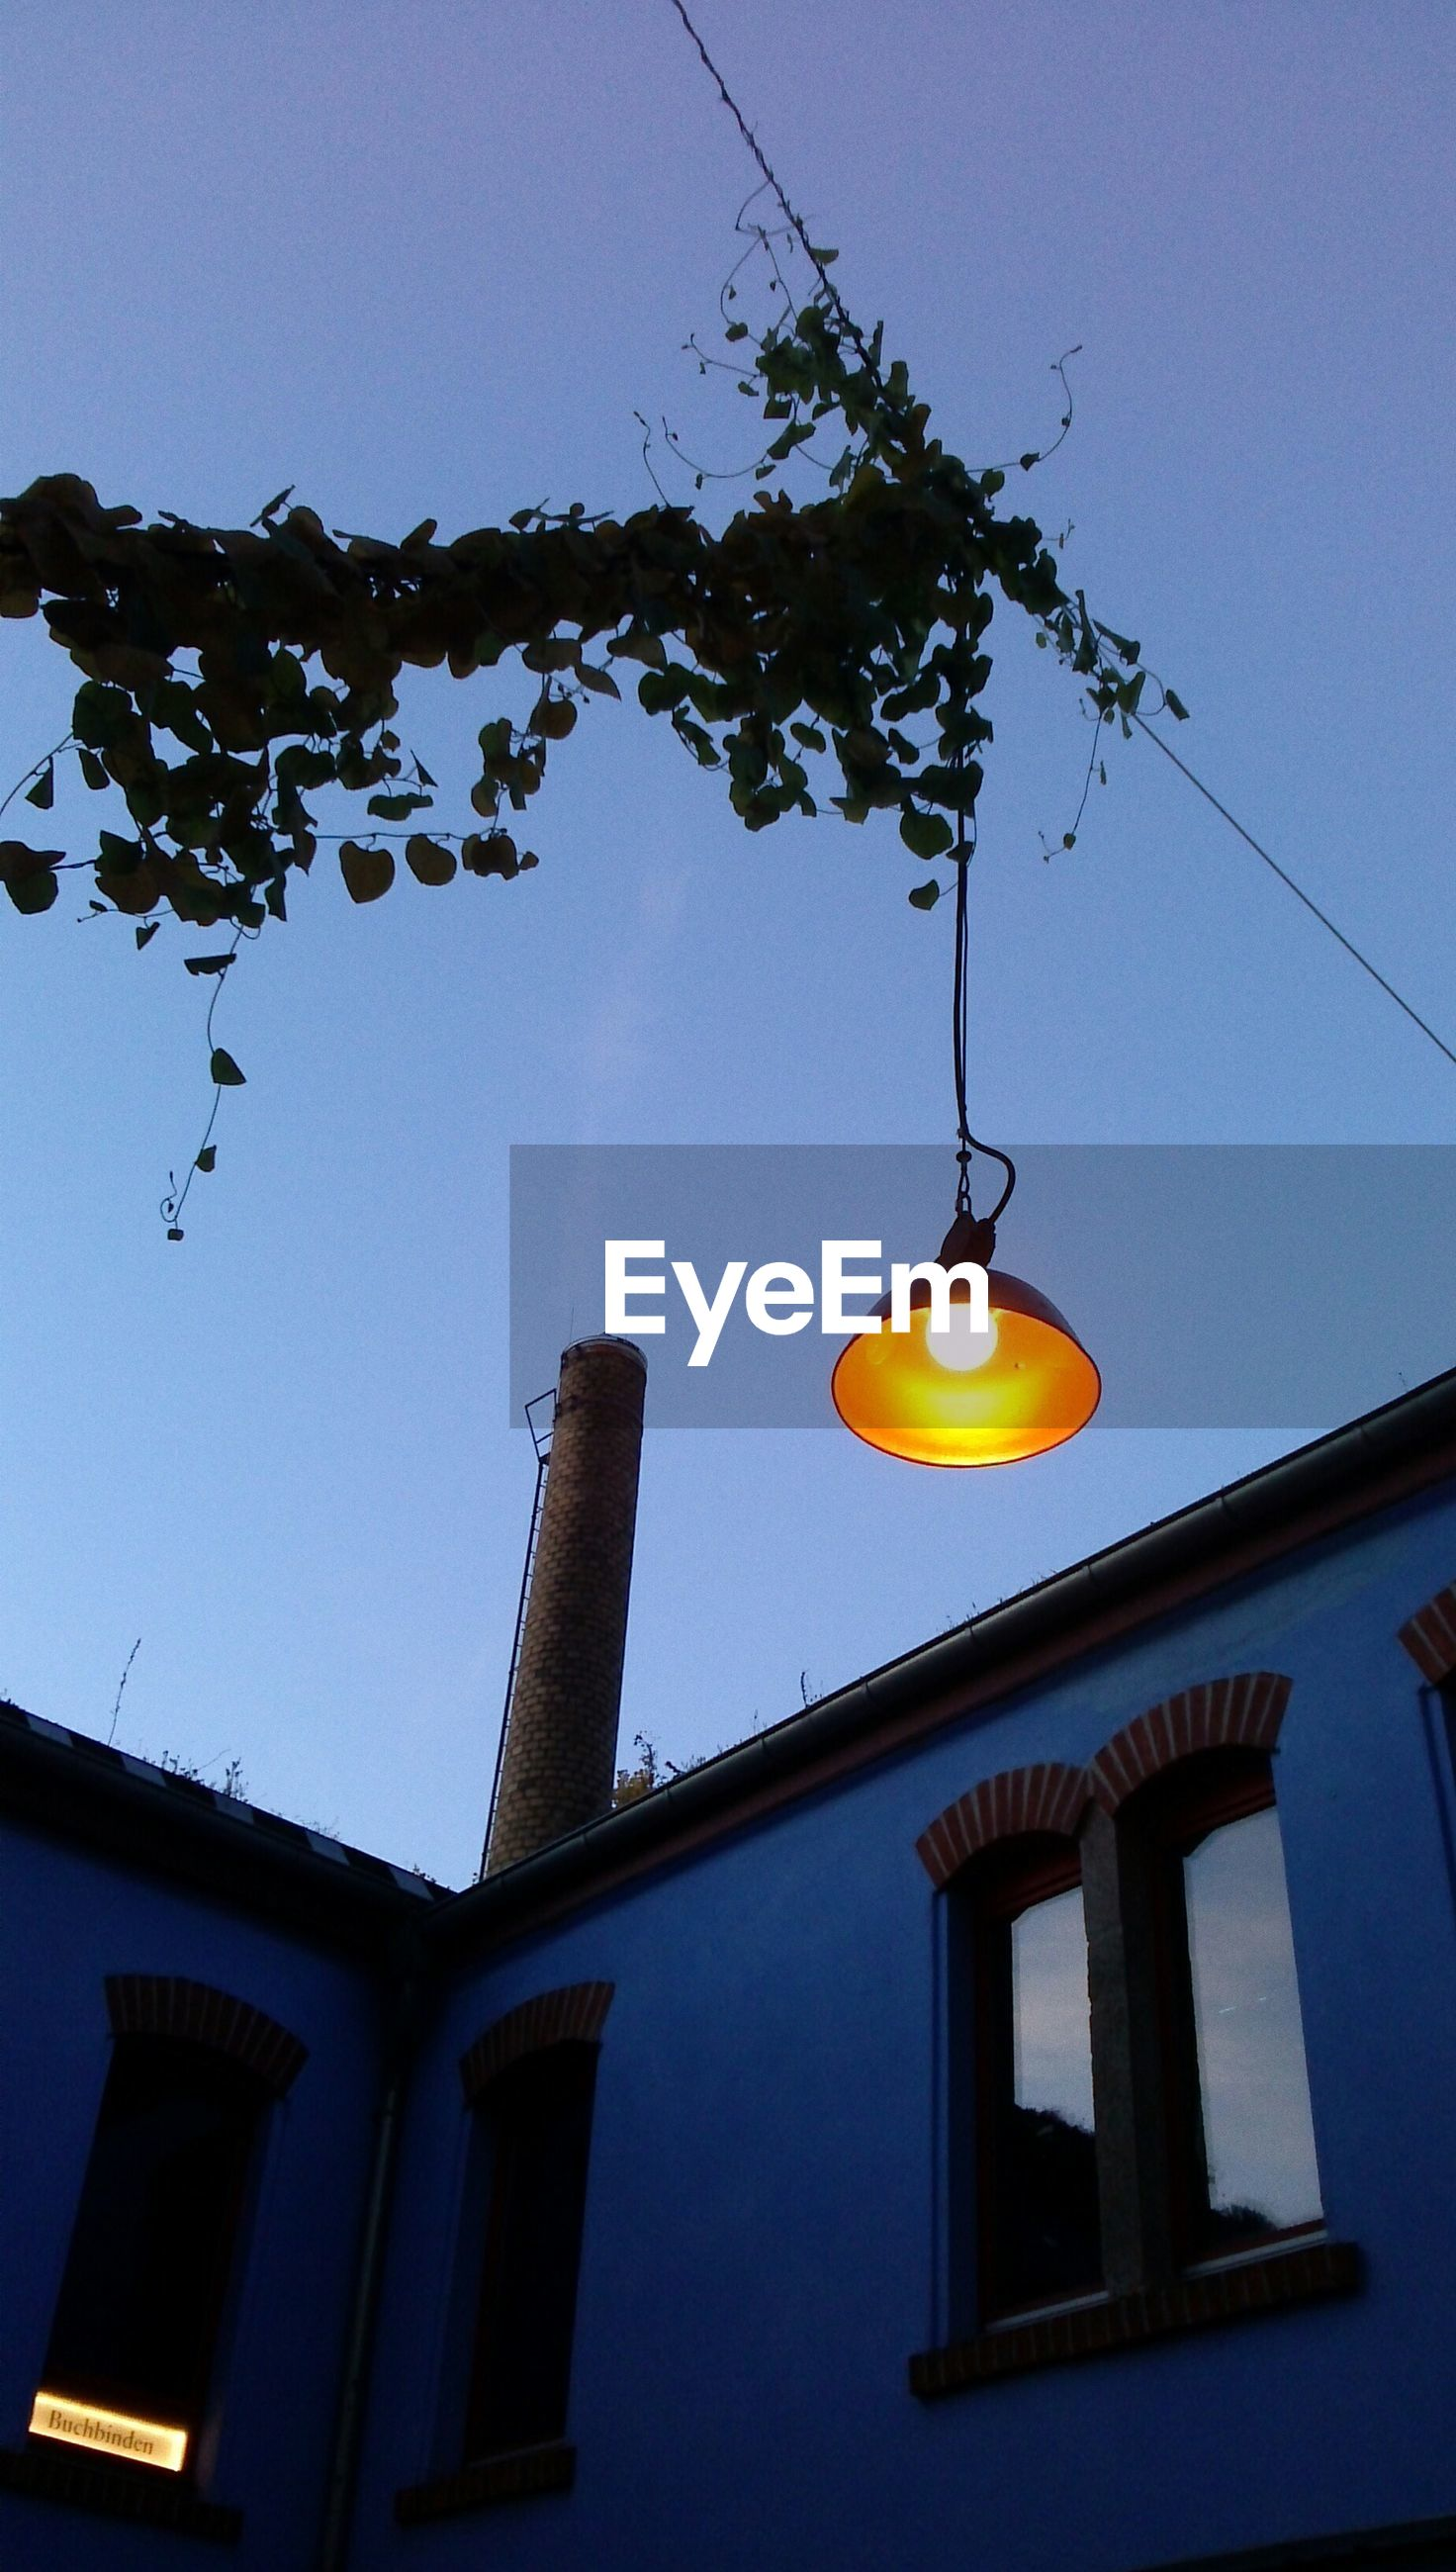 low angle view, architecture, building exterior, built structure, lighting equipment, clear sky, street light, hanging, illuminated, sky, lantern, branch, high section, building, window, tree, residential building, electricity, city, house